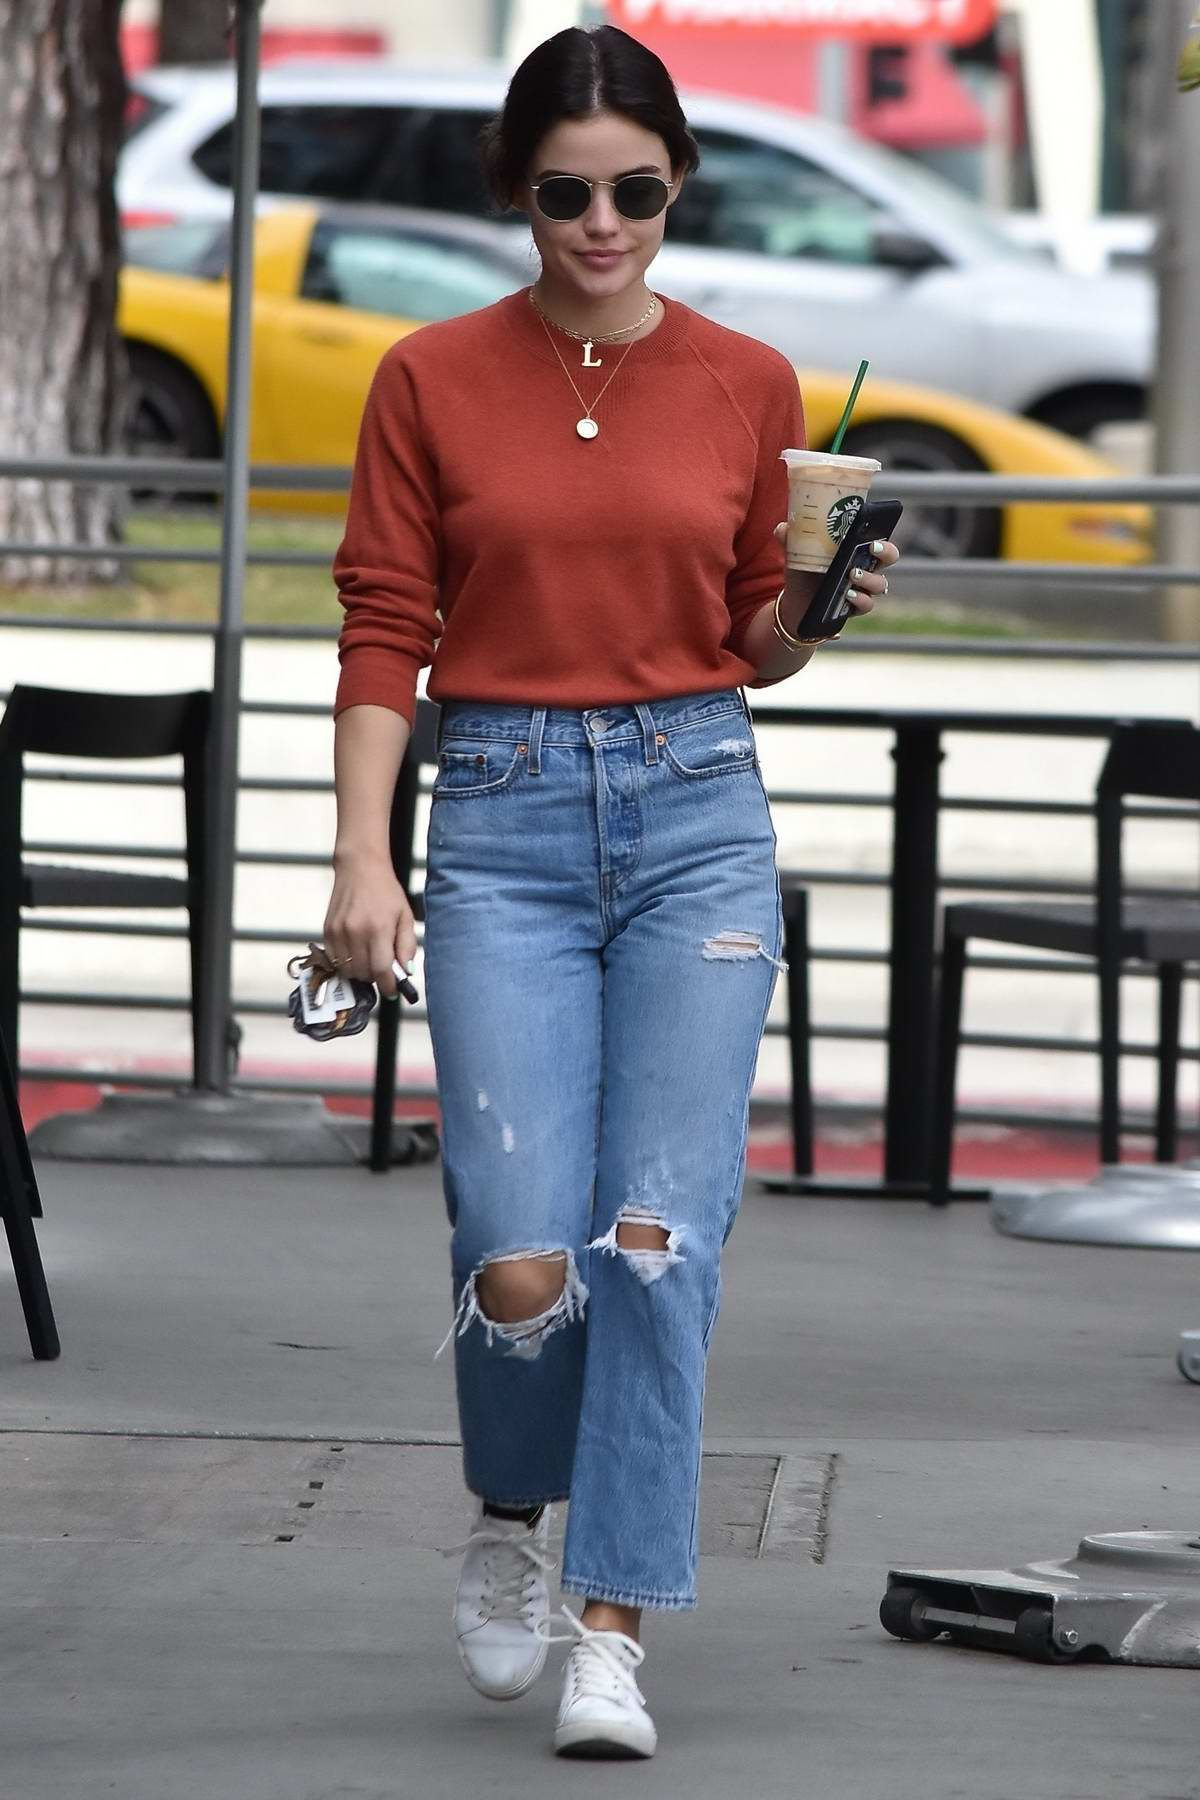 Lucy Hale wears an orange top and ripped jeans during a coffee run at Starbucks in Studio City, Los Angeles